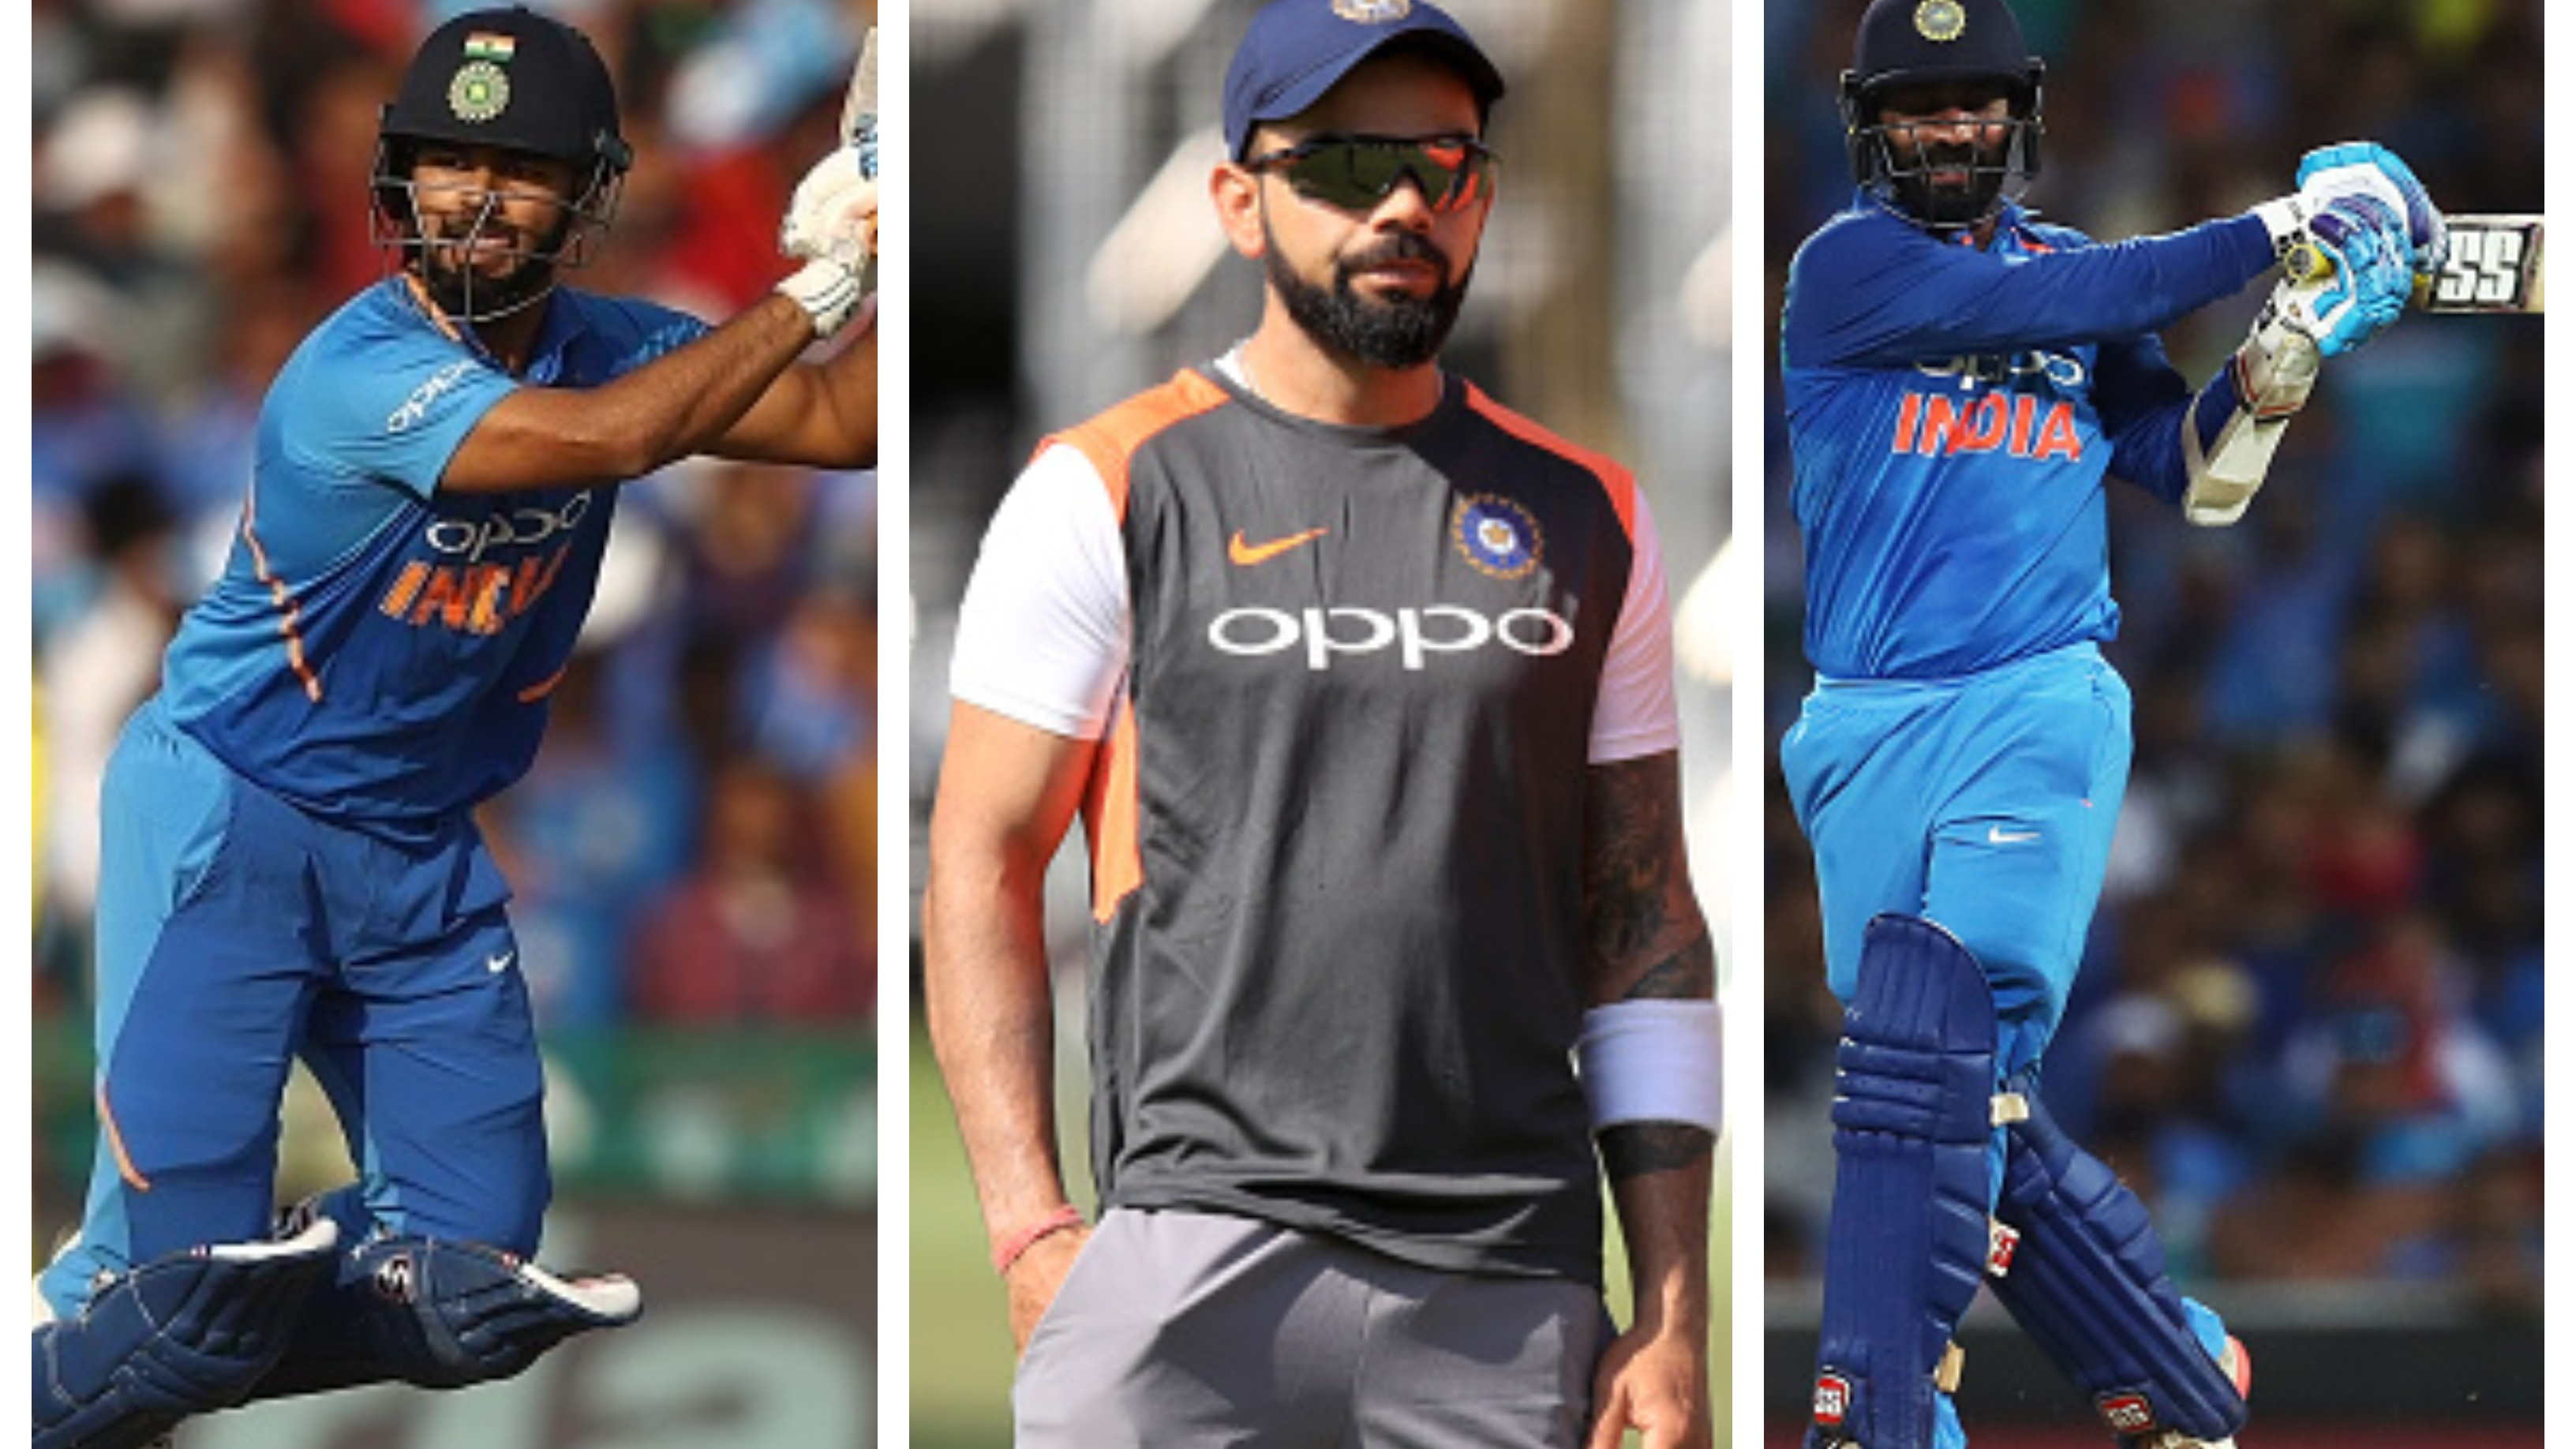 CWC 2019: Virat Kohli explains why Karthik was preferred over Pant in India's WC squad